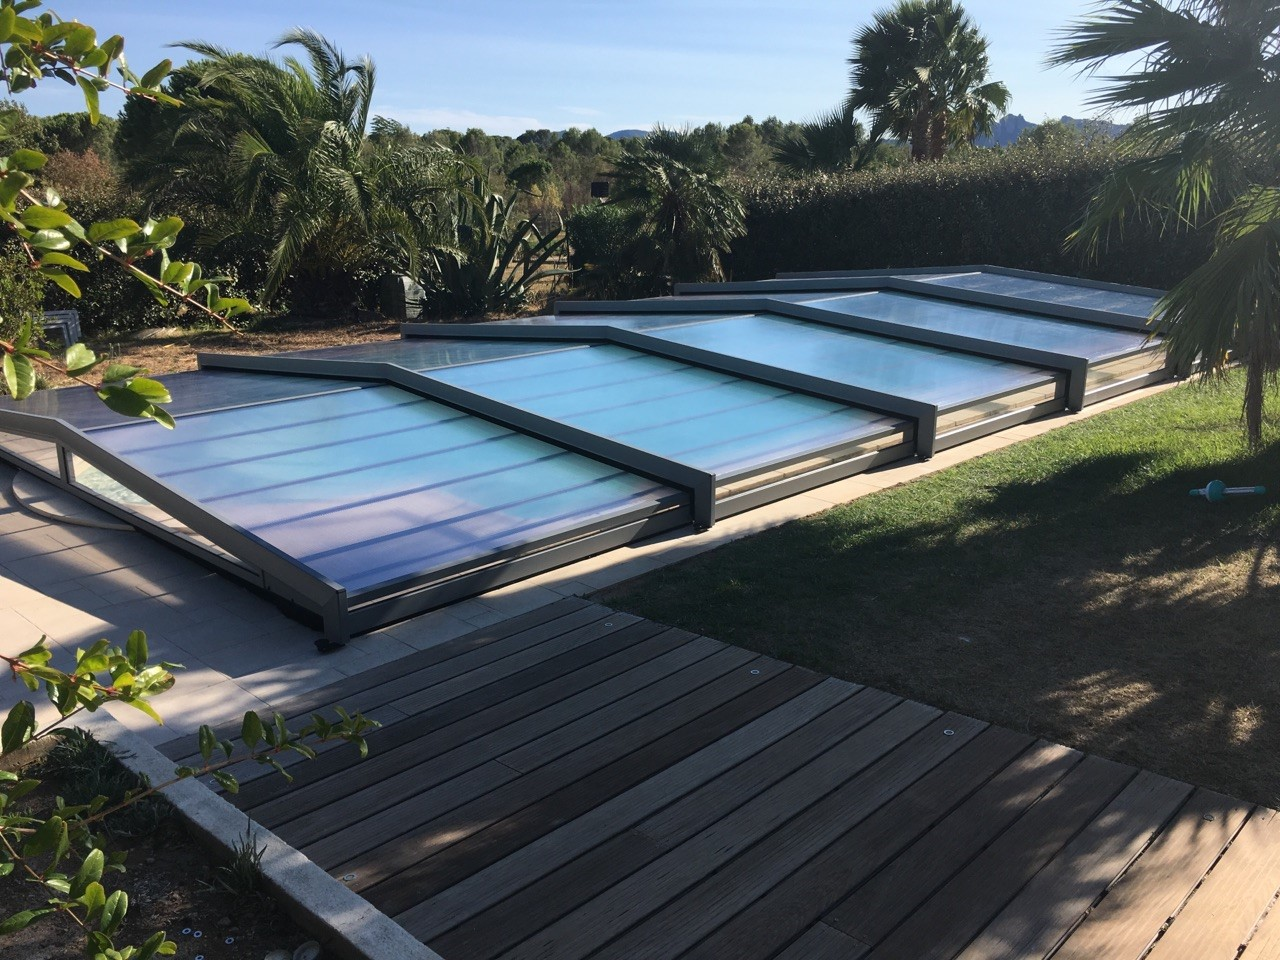 Abri de piscine le plus bas possible à Roquebrune sur Argens 83